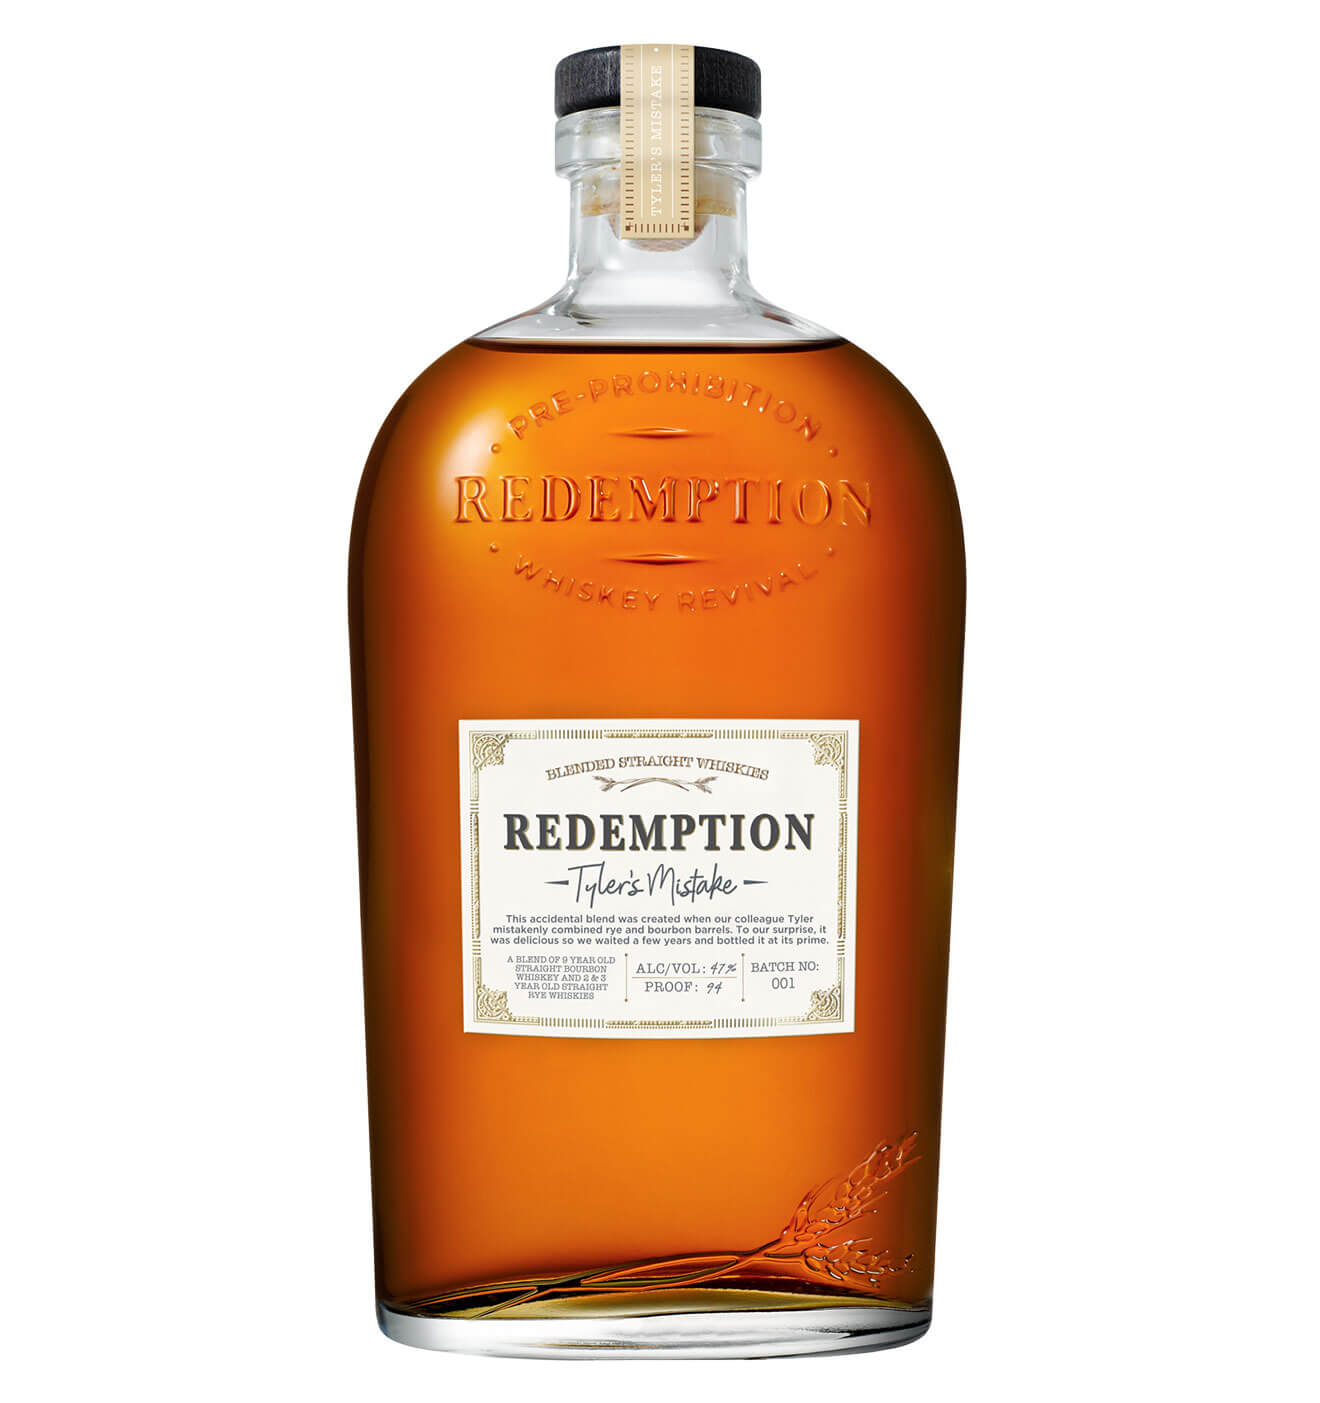 Redemption Whiskey, bottle on white